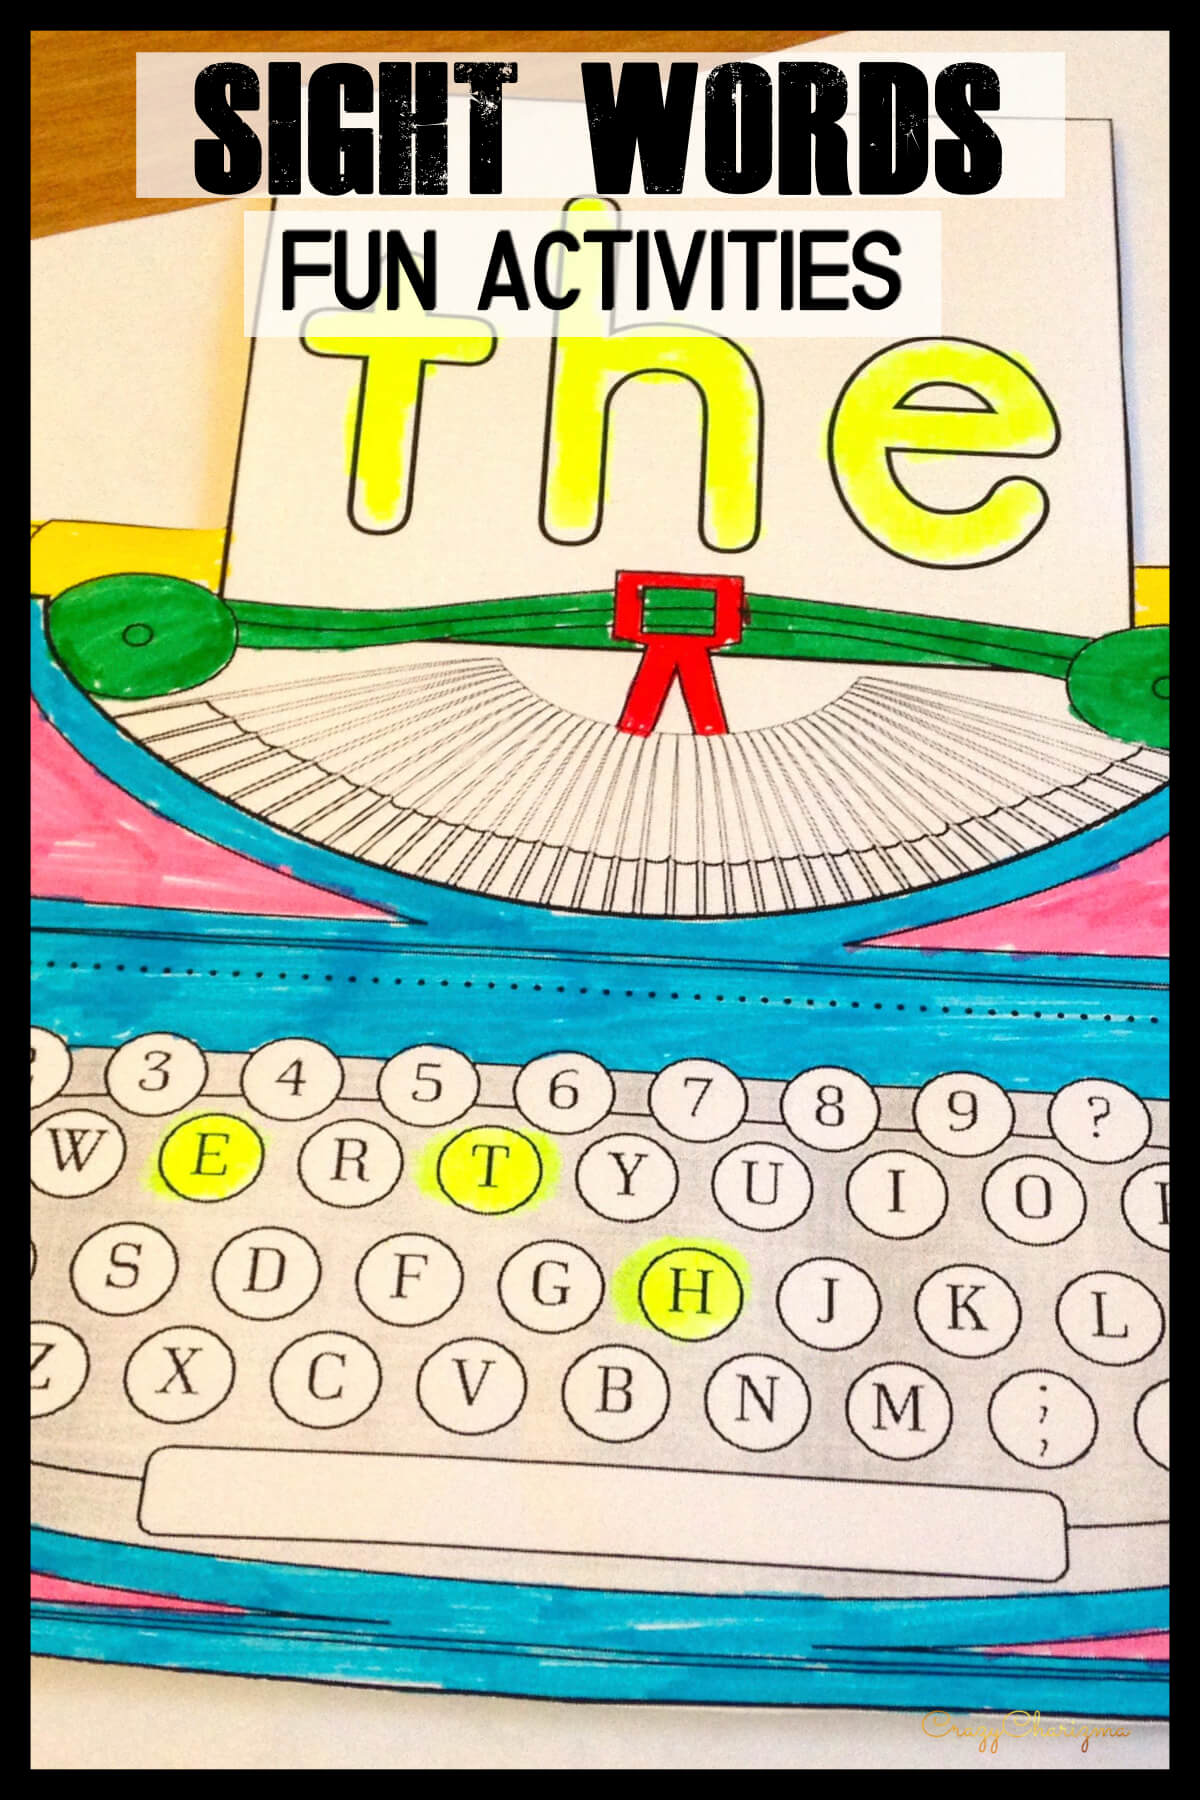 Need hands-on and fun sight words activities? Grab the packet and use as an Interactive Notebook (organize kids' materials like a portfolio show progress throughout the year). More ways to use: as Word Work Activities or No-prep literacy centers. #CrazyCharizma #HandsOnActivitiesForKids #SightWords #PhonicsActivities